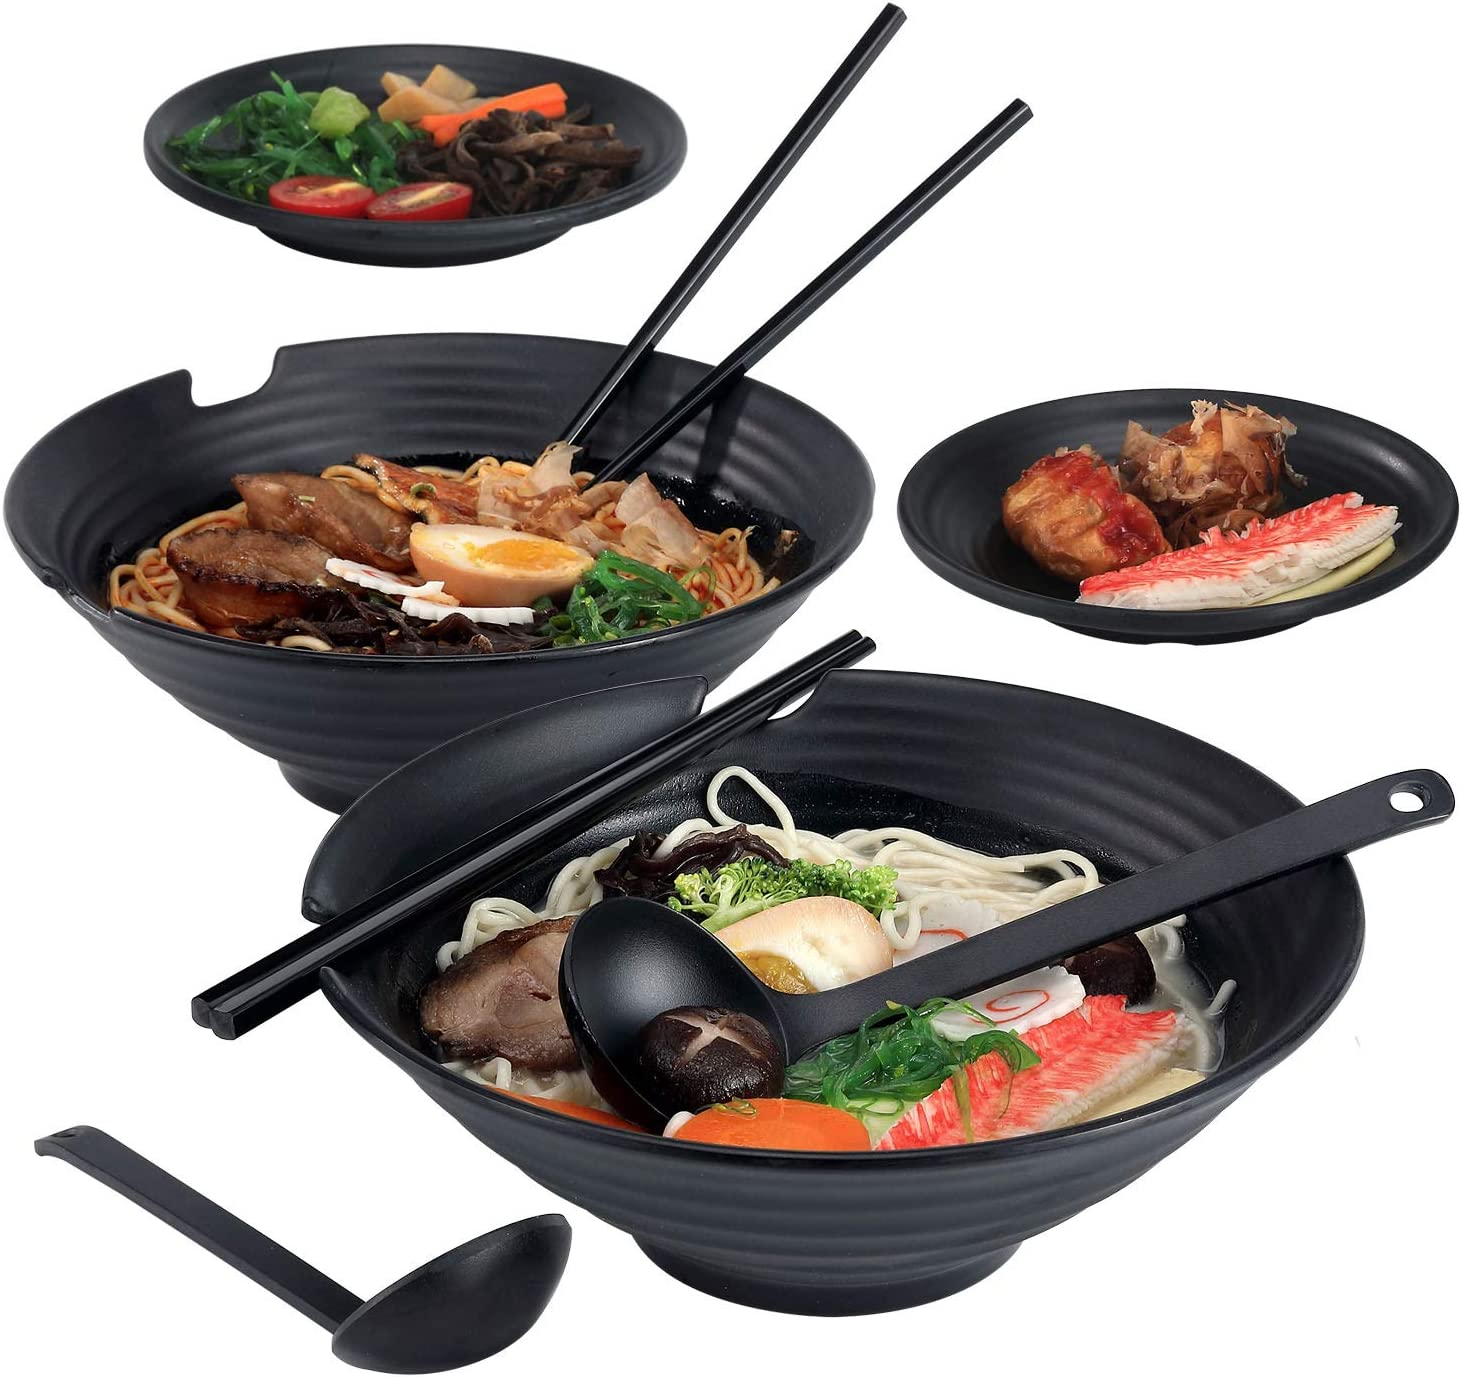 VUDECO 2 x Ramen Bowl Set for Christmas Noodles Bowl Set Pho Bowl Set Japanese Style Ramen Bowls and Spoons Set with Chopsticks Saucers Dishes Large 38 oz Bowl for Asian Food 8 PCS